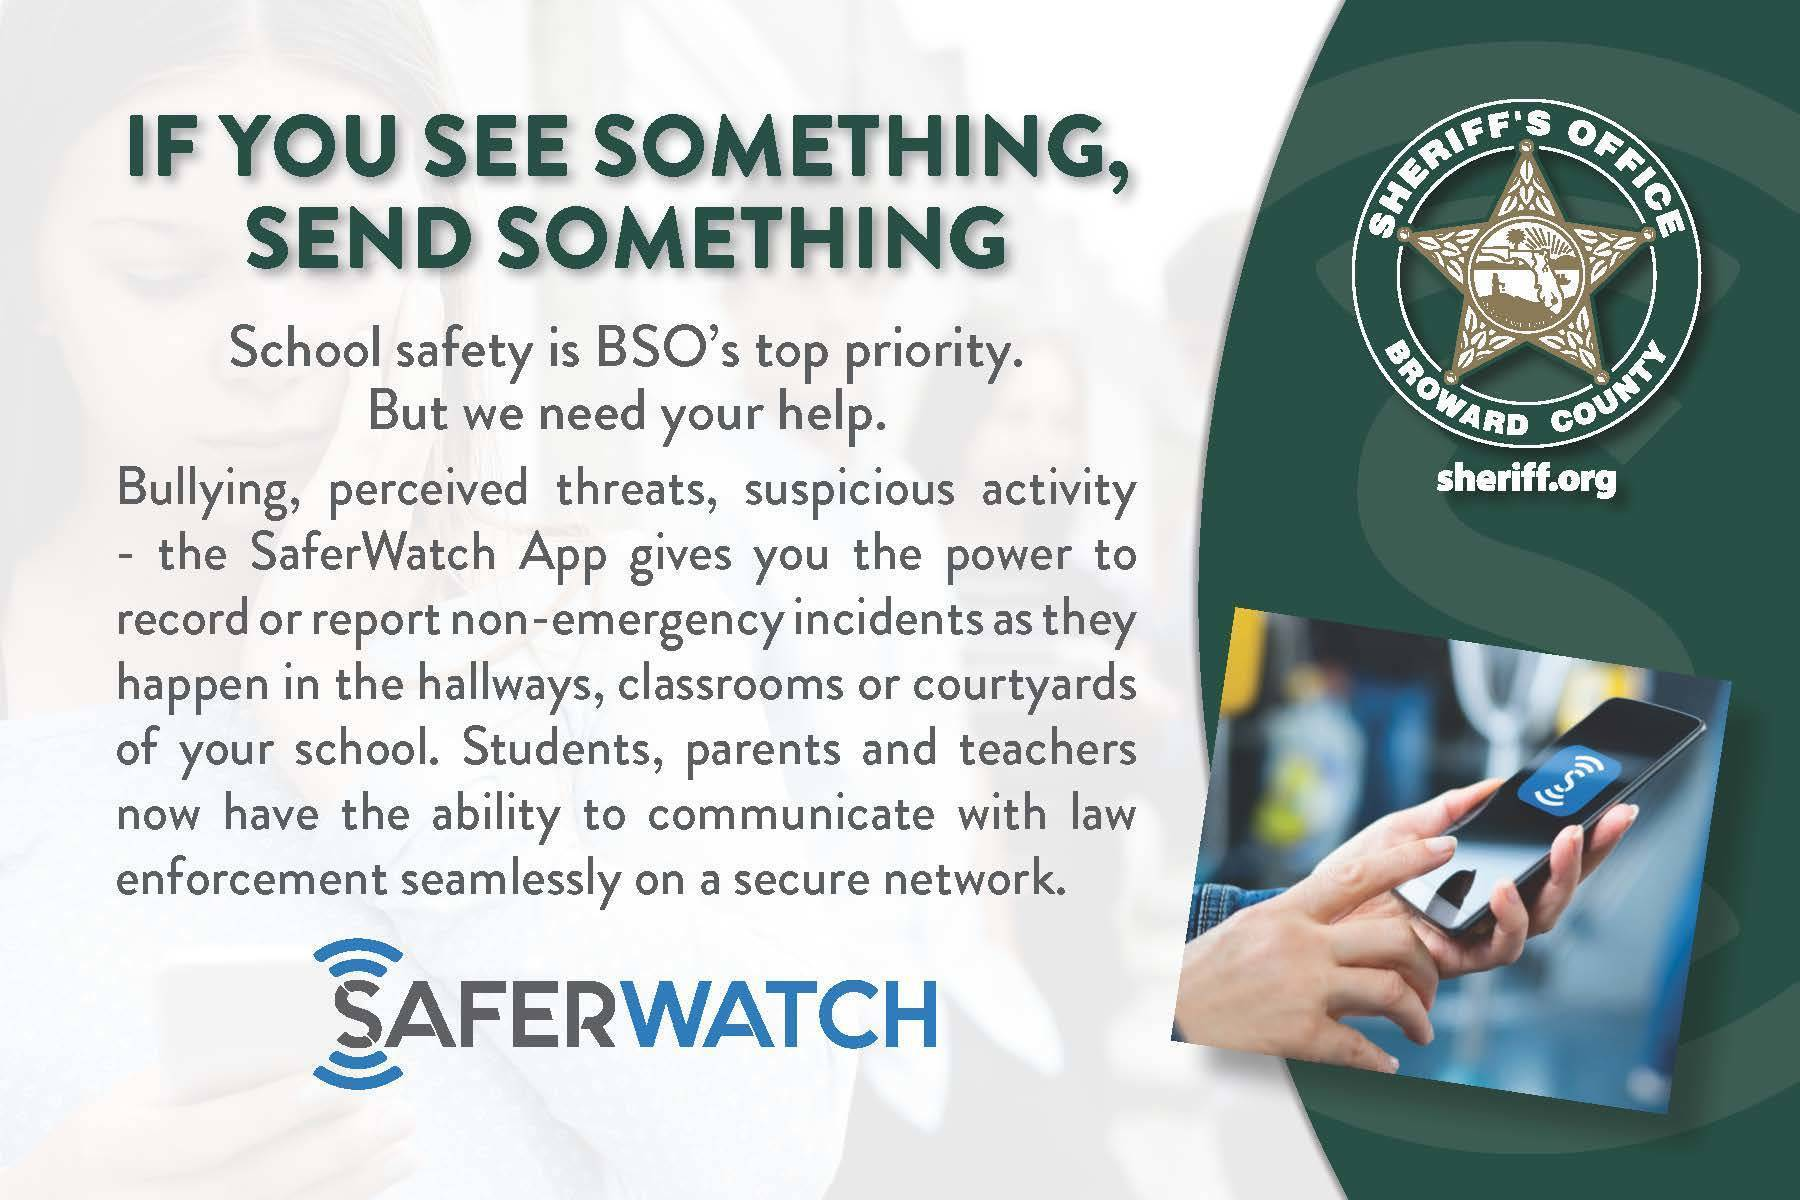 SaferWatch App